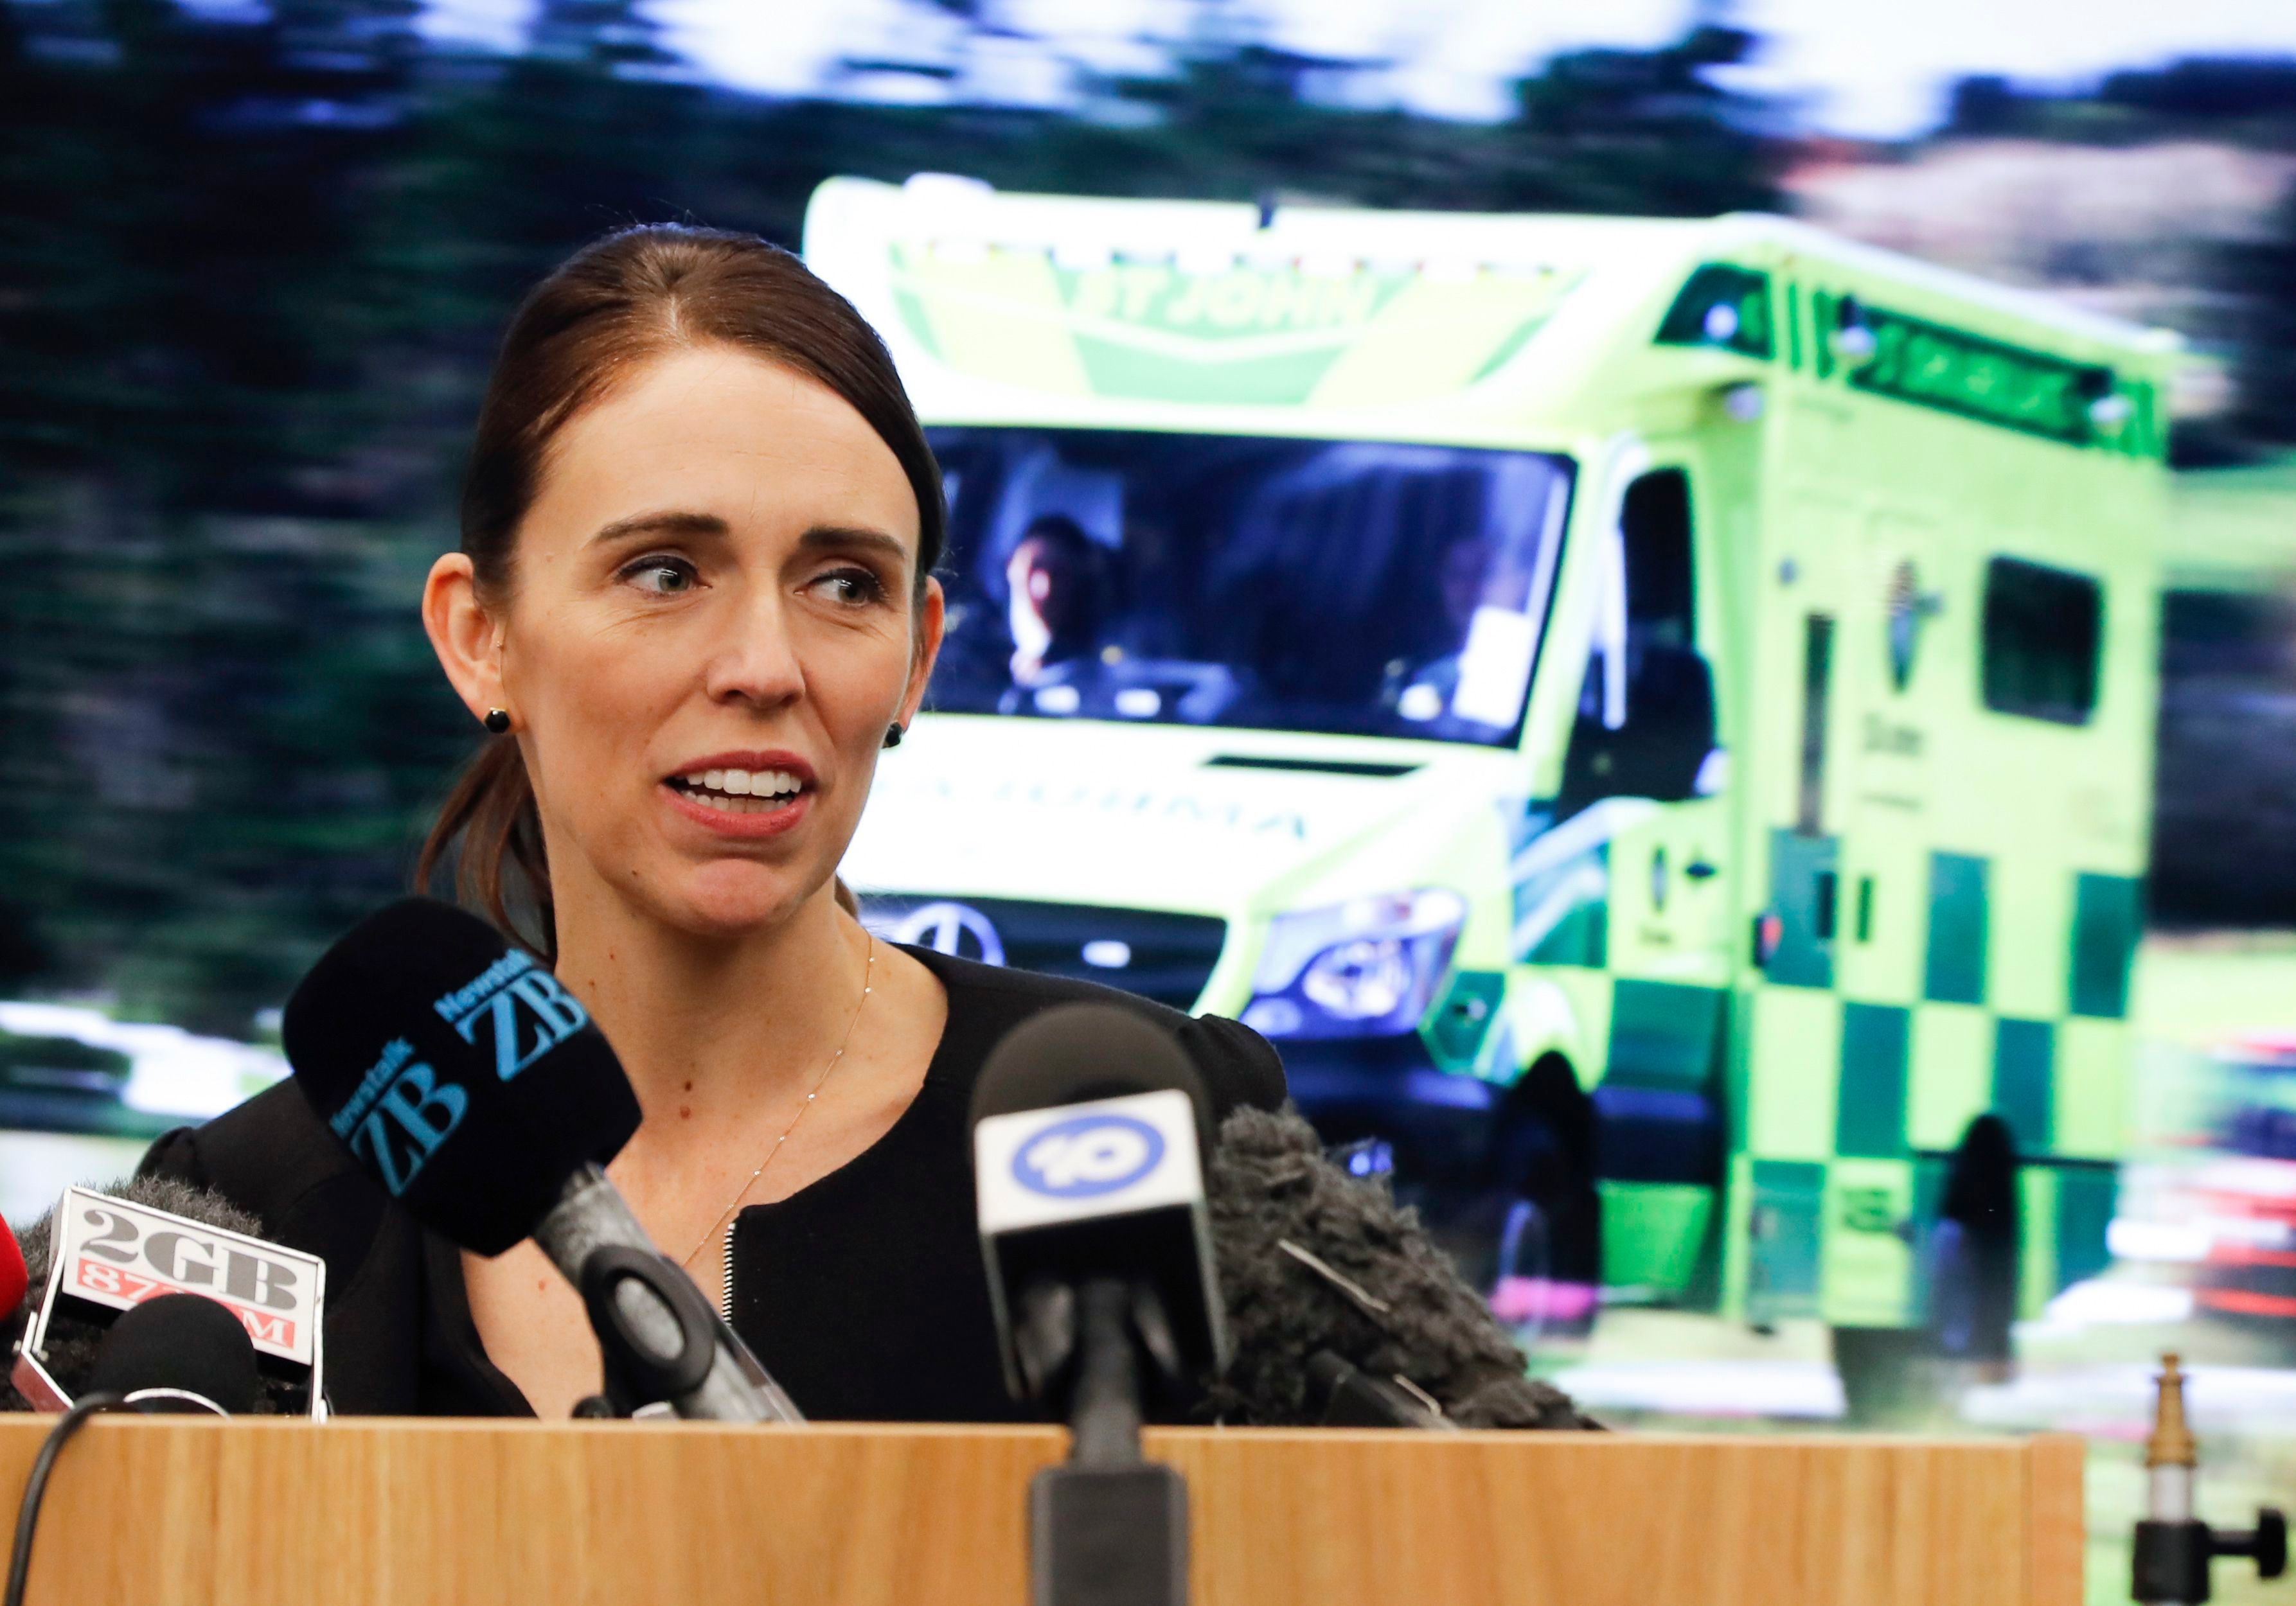 New Zealand's Prime Minister Jacinda Ardern speaks during an event to meet the first responder in the March 15 mosque shooting, in Christchurch, New ZealandMosque Shooting, Christchurch, New Zealand - 20 Mar 2019